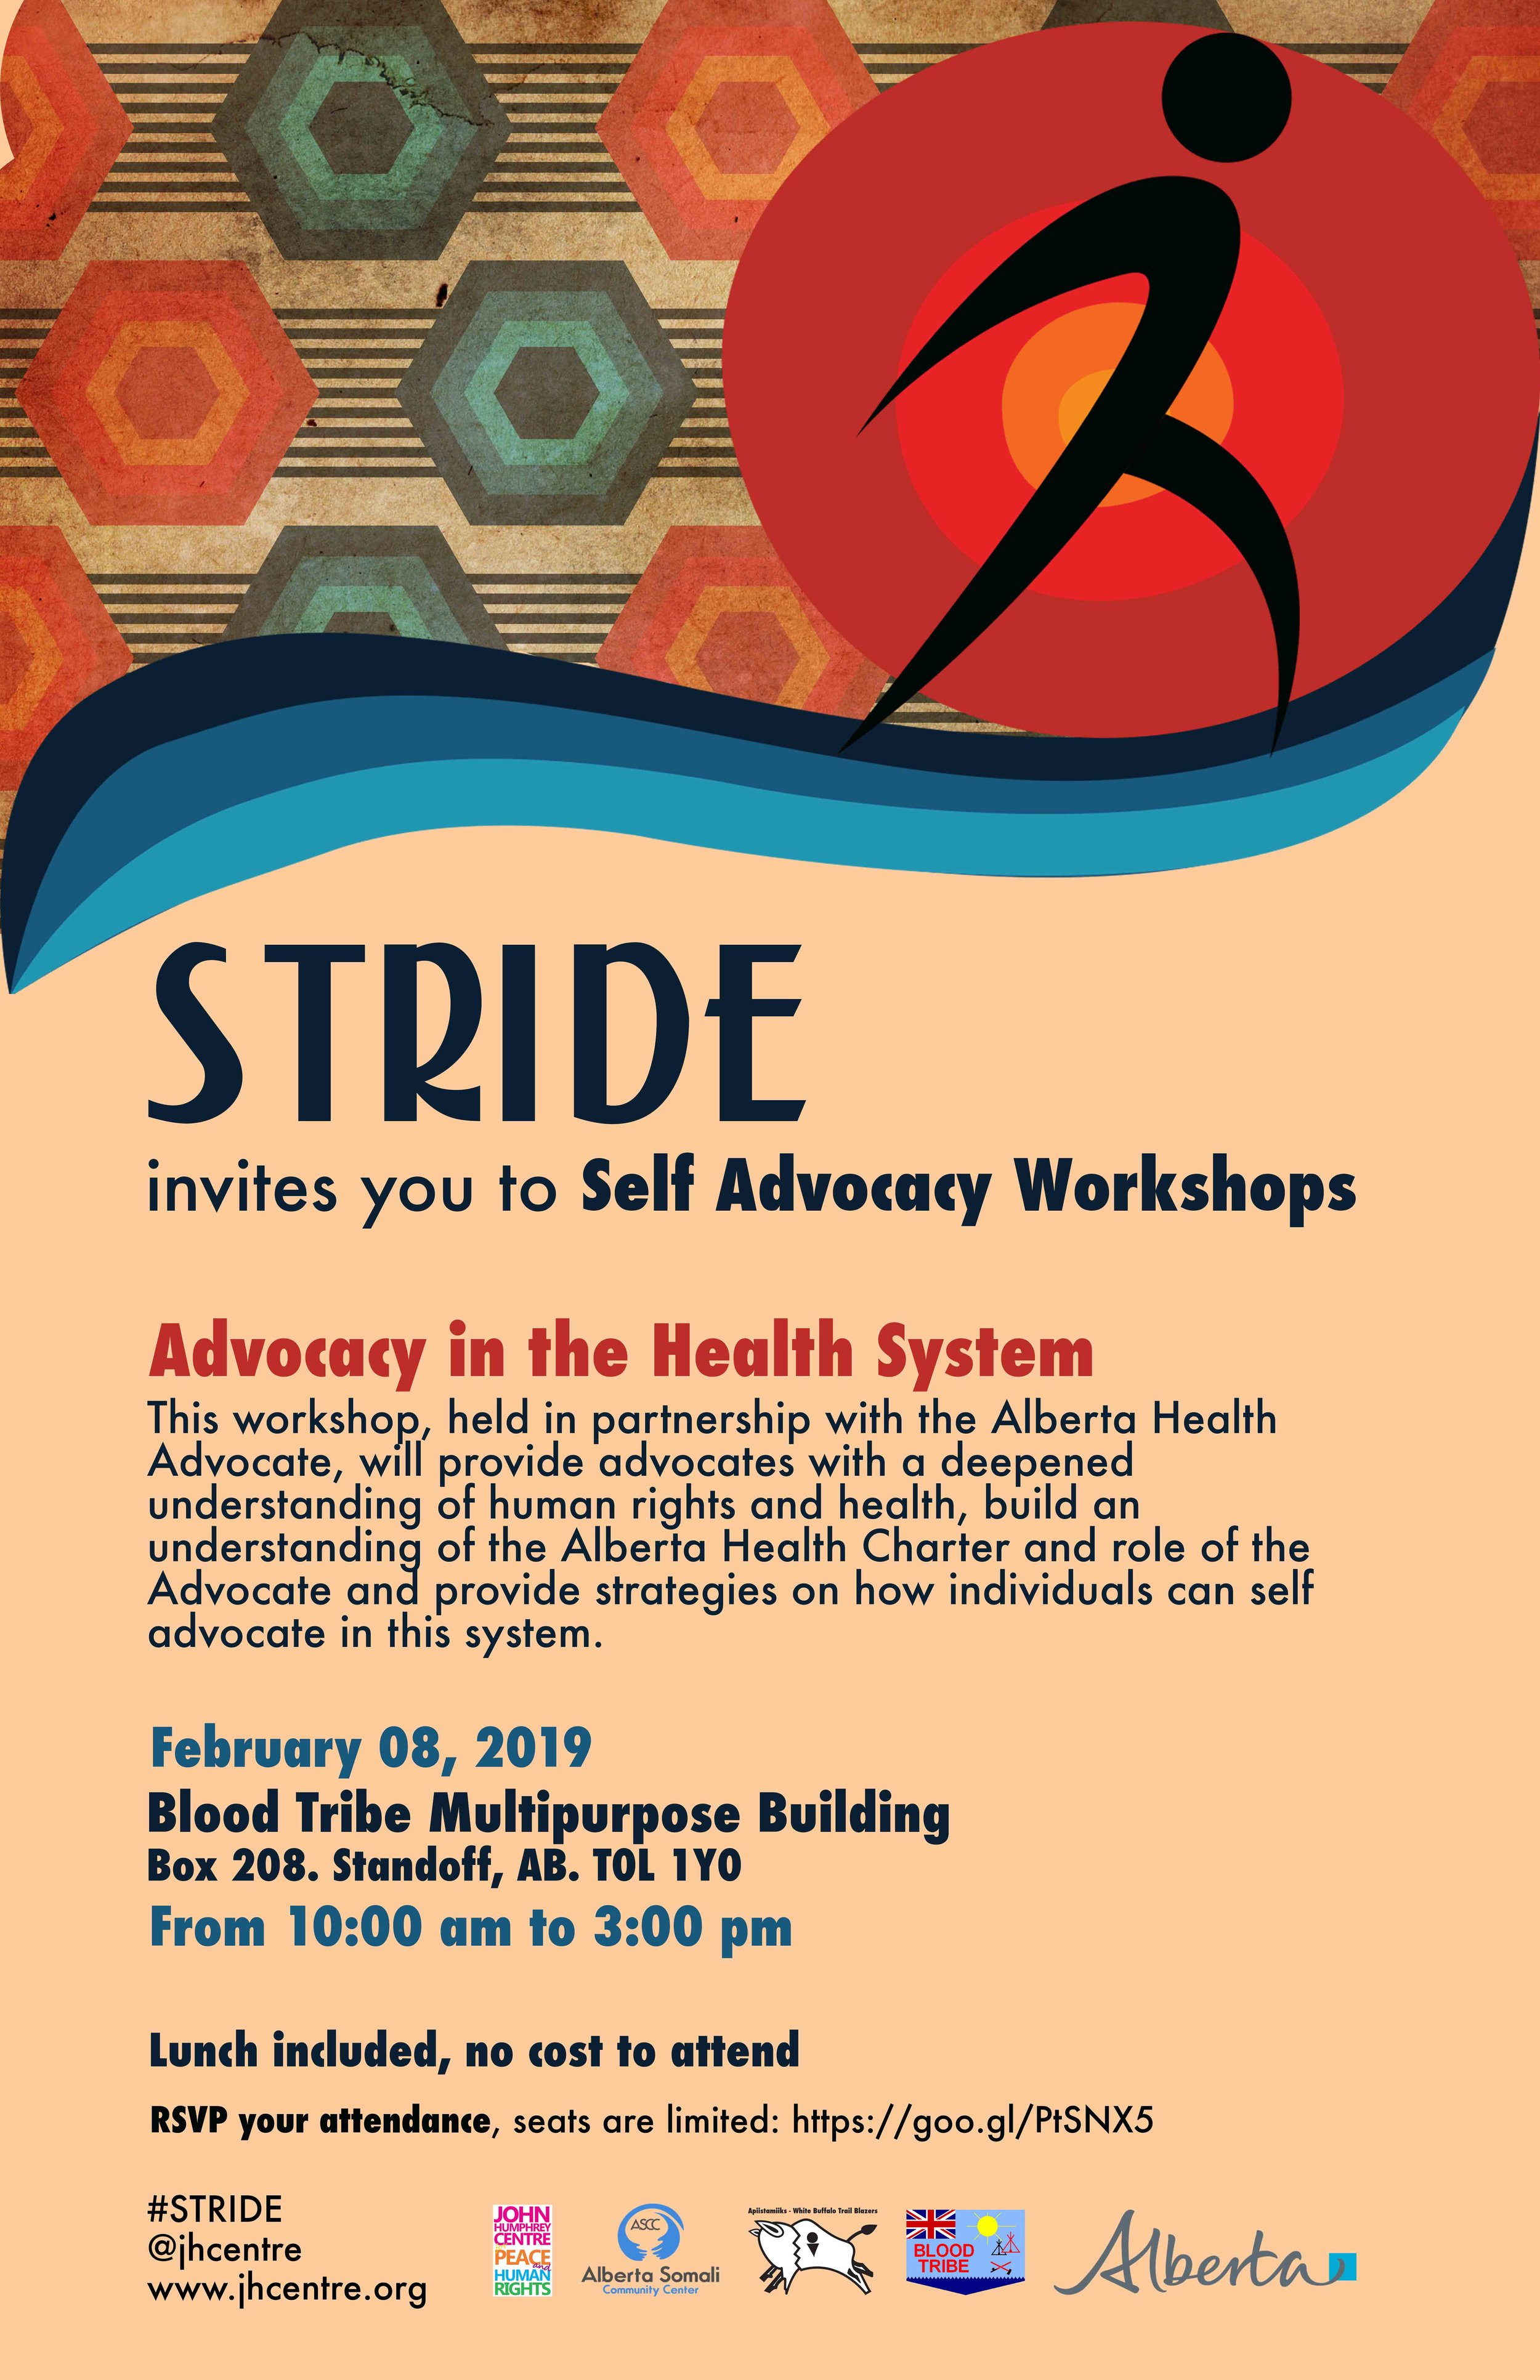 Stride Southern Alberta: Advocacy in Health